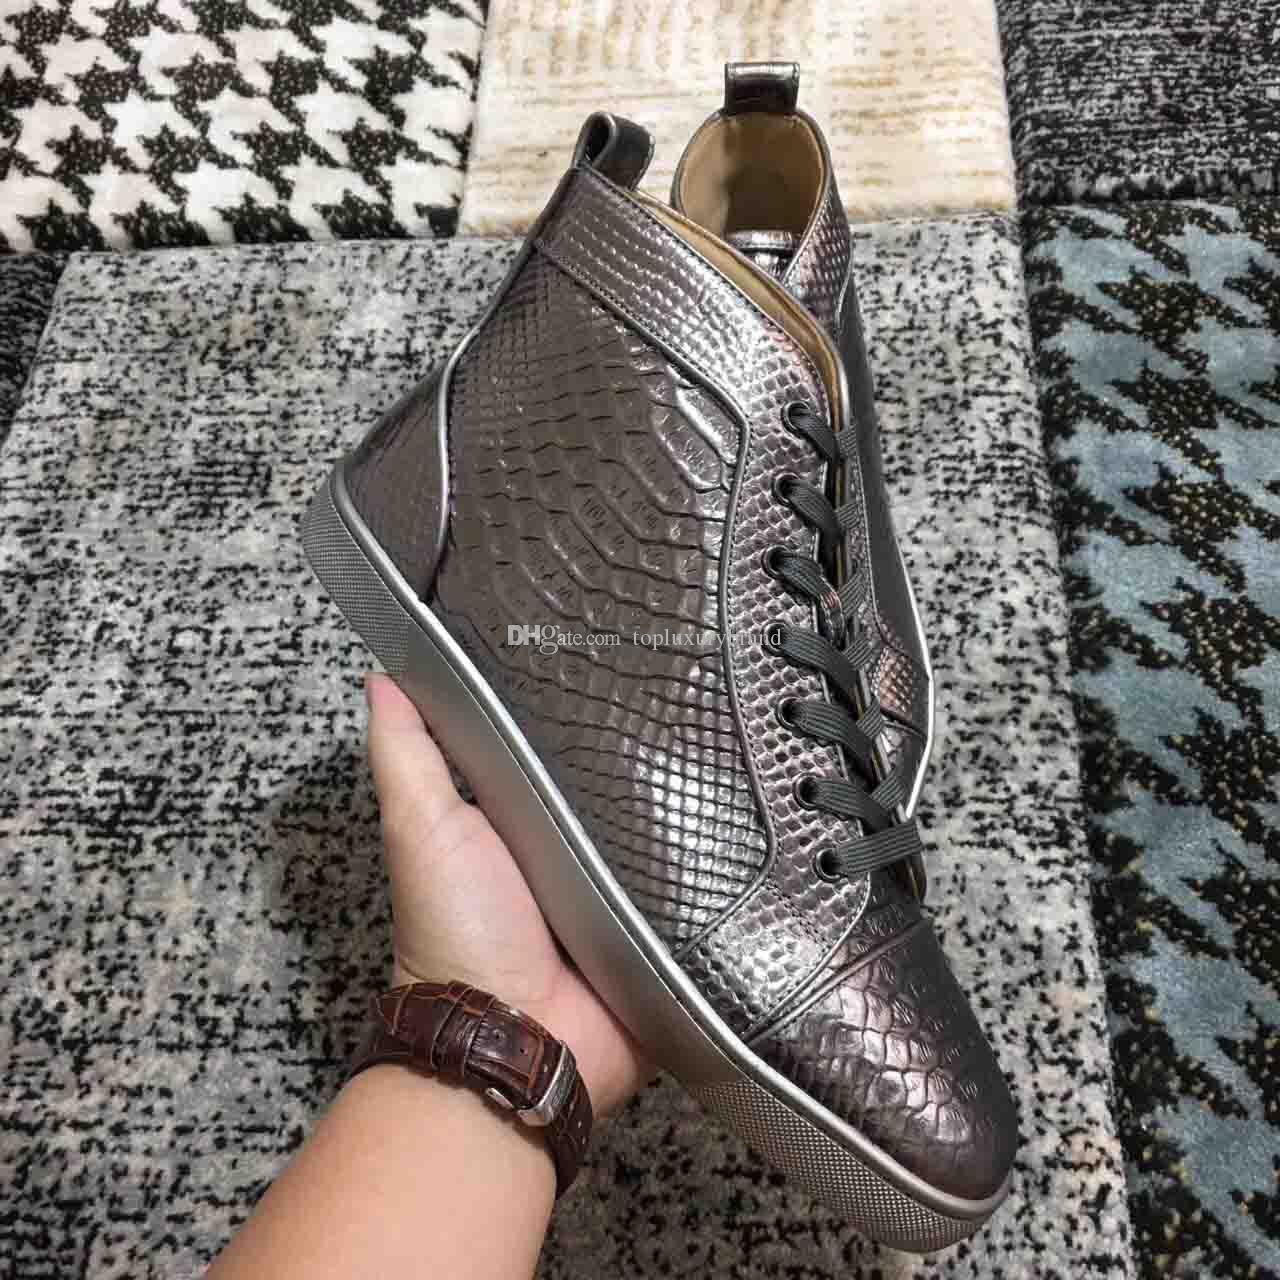 Best Quality crocodile Genuine Leather Men's Sneakers Red Bottom Women Men High Top Luxurious Casual Flat Designer Party Dress Walking Shoes